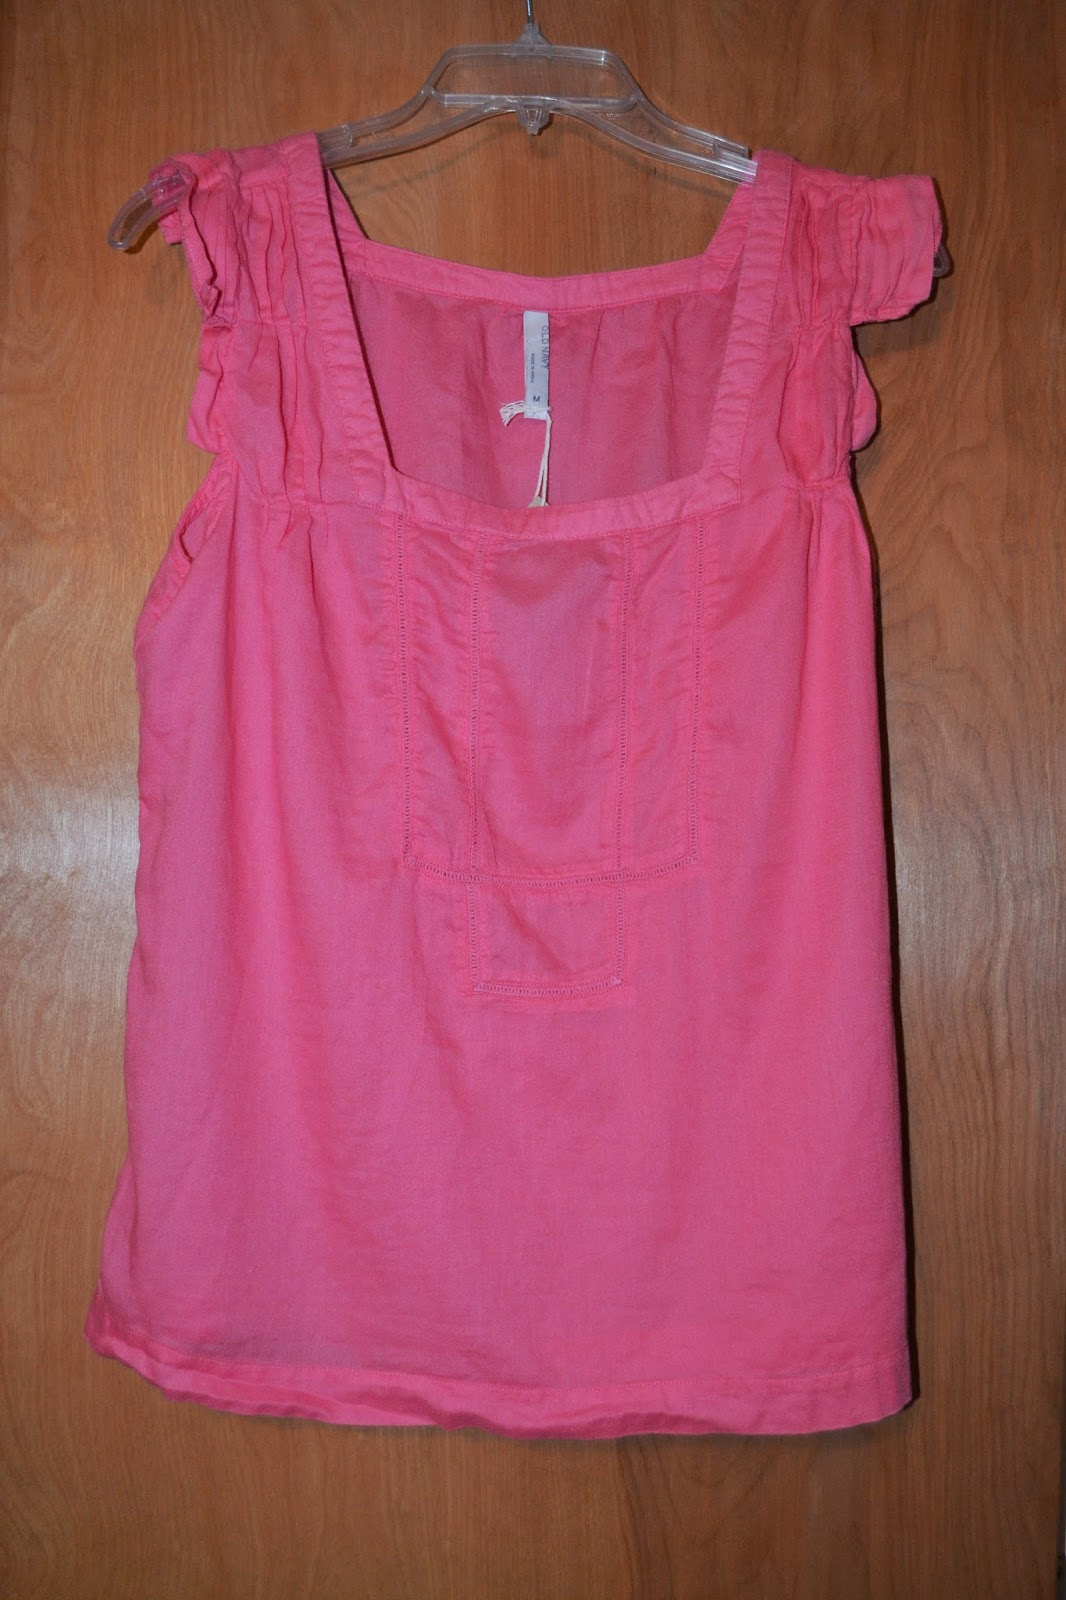 Thred up Pink Top